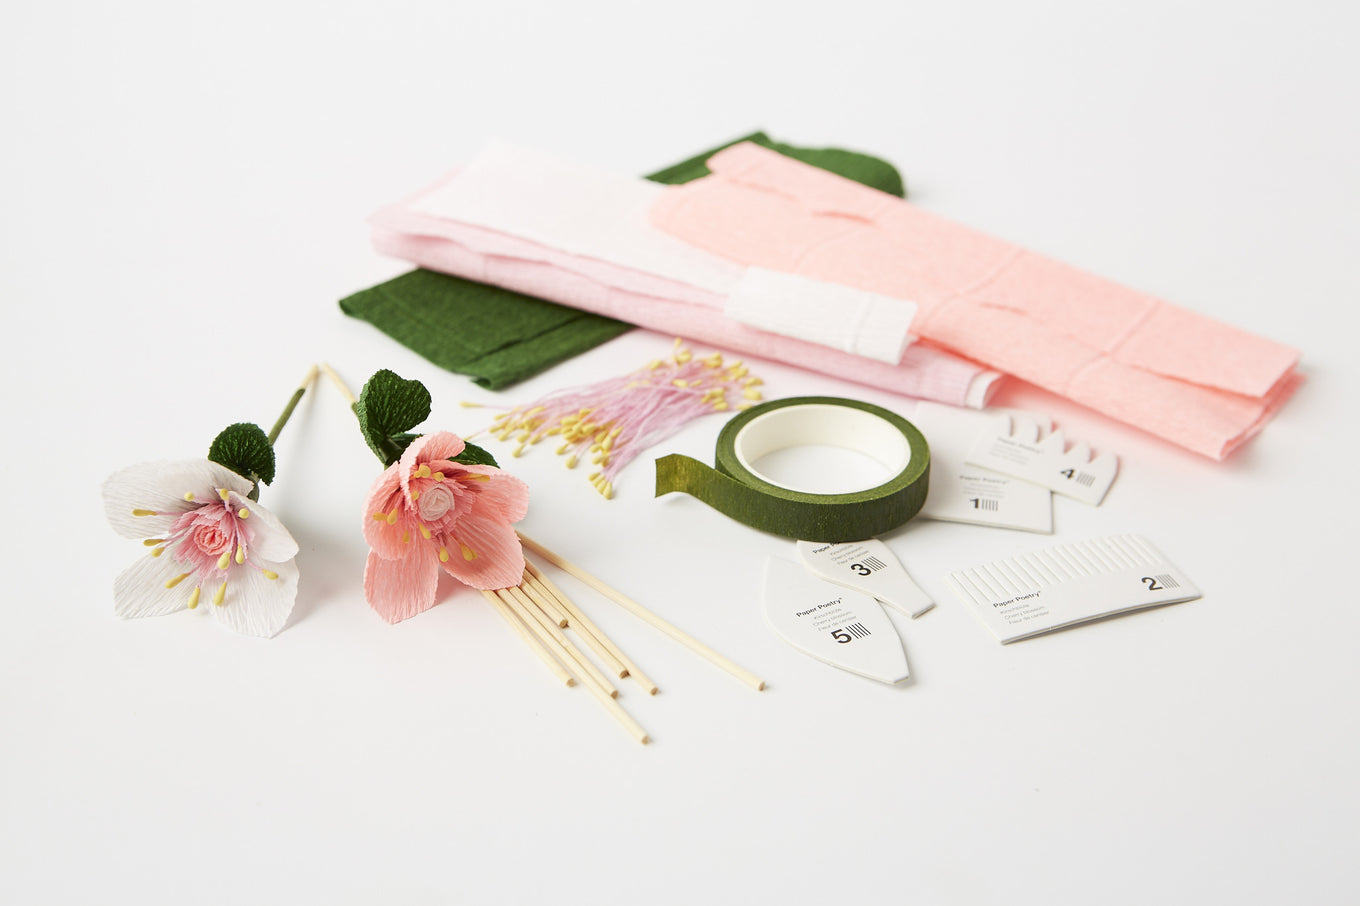 Make Your Own Cherry Blossom - DIY Set